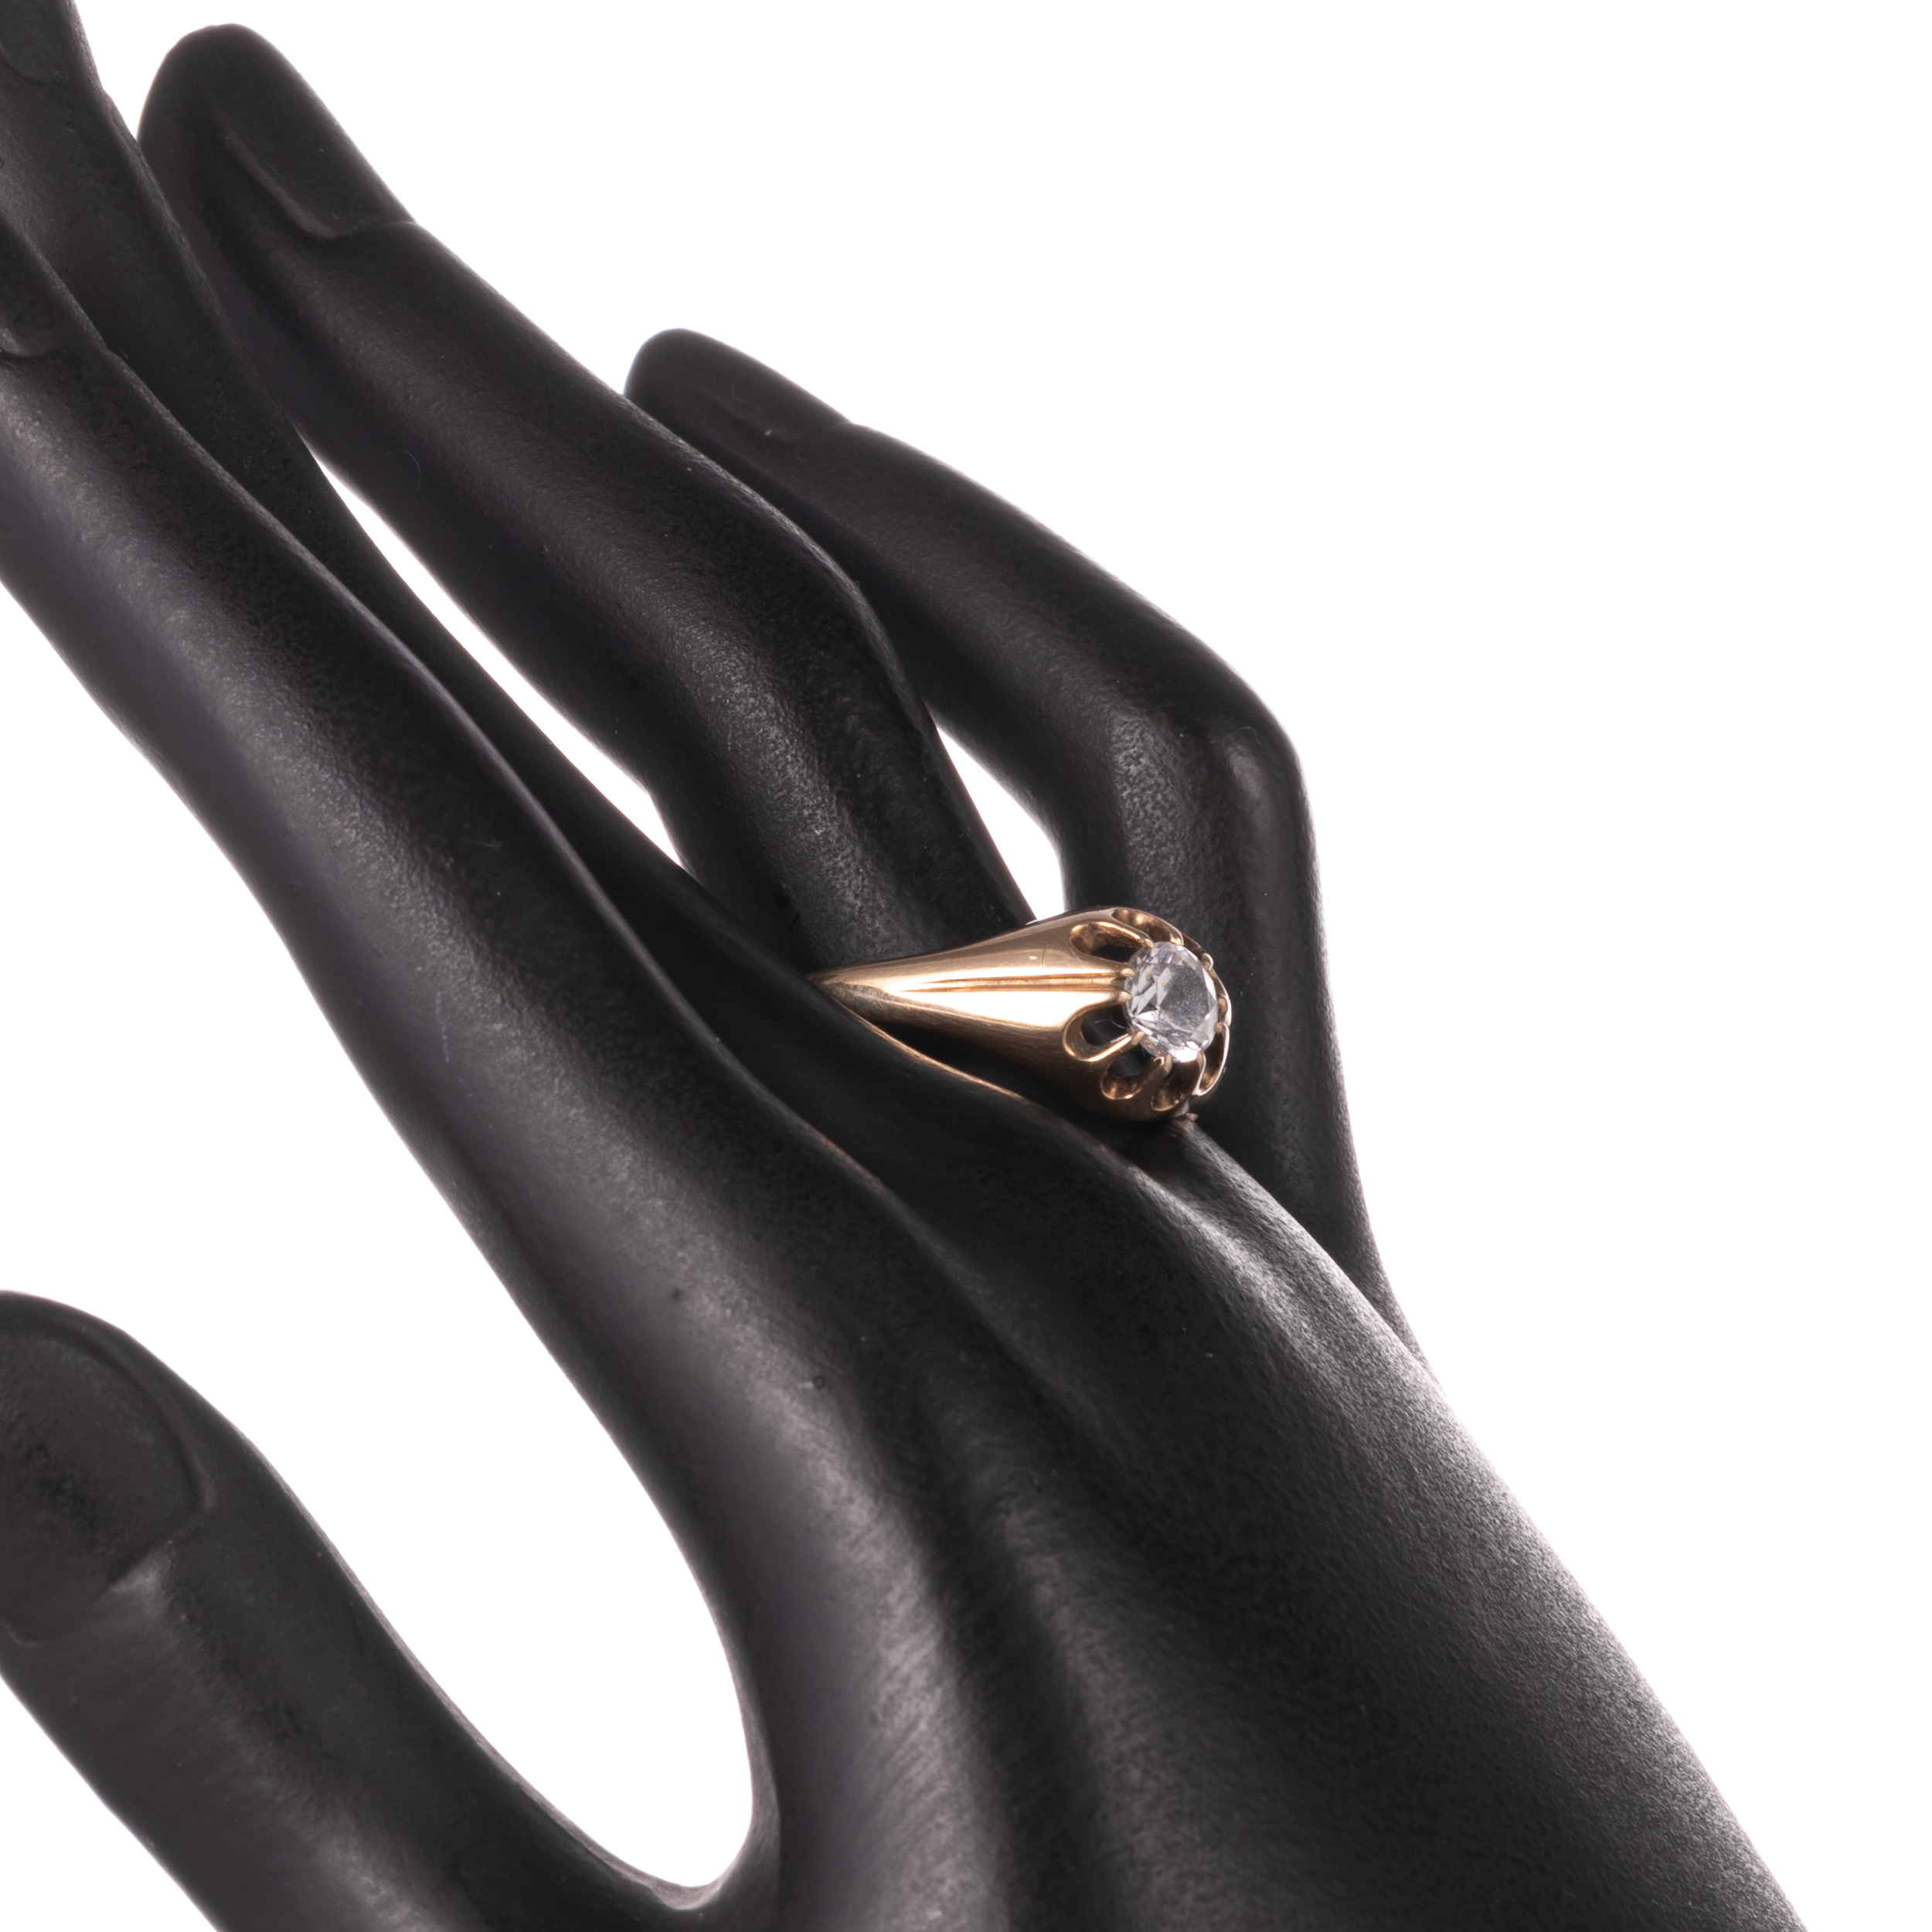 9ct Gold Gypsy Paste Solitaire Ring - Image 2 of 7